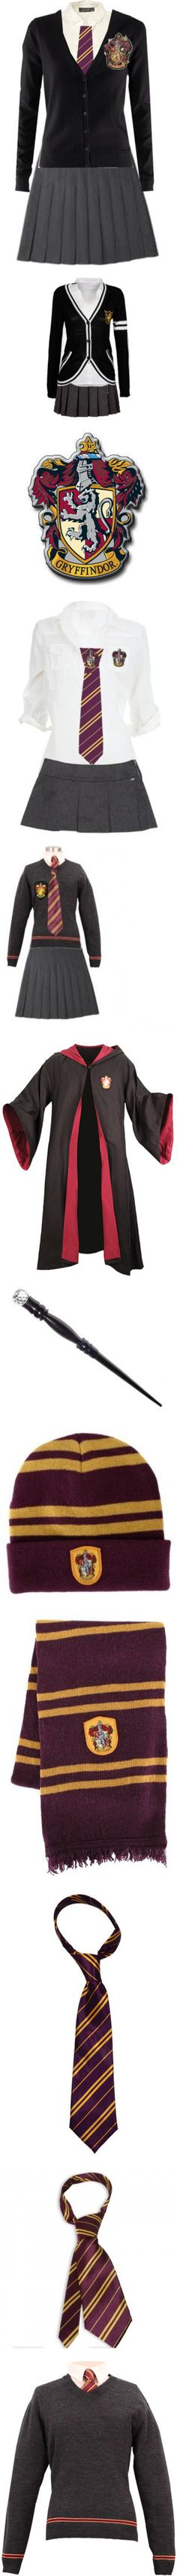 Harry Potter school uniform by kerstinxx on Polyvore featuring harry potter, dresses, hogwarts, gryffindor, uniform, harry potter., outfit, tops, fillers and jackets